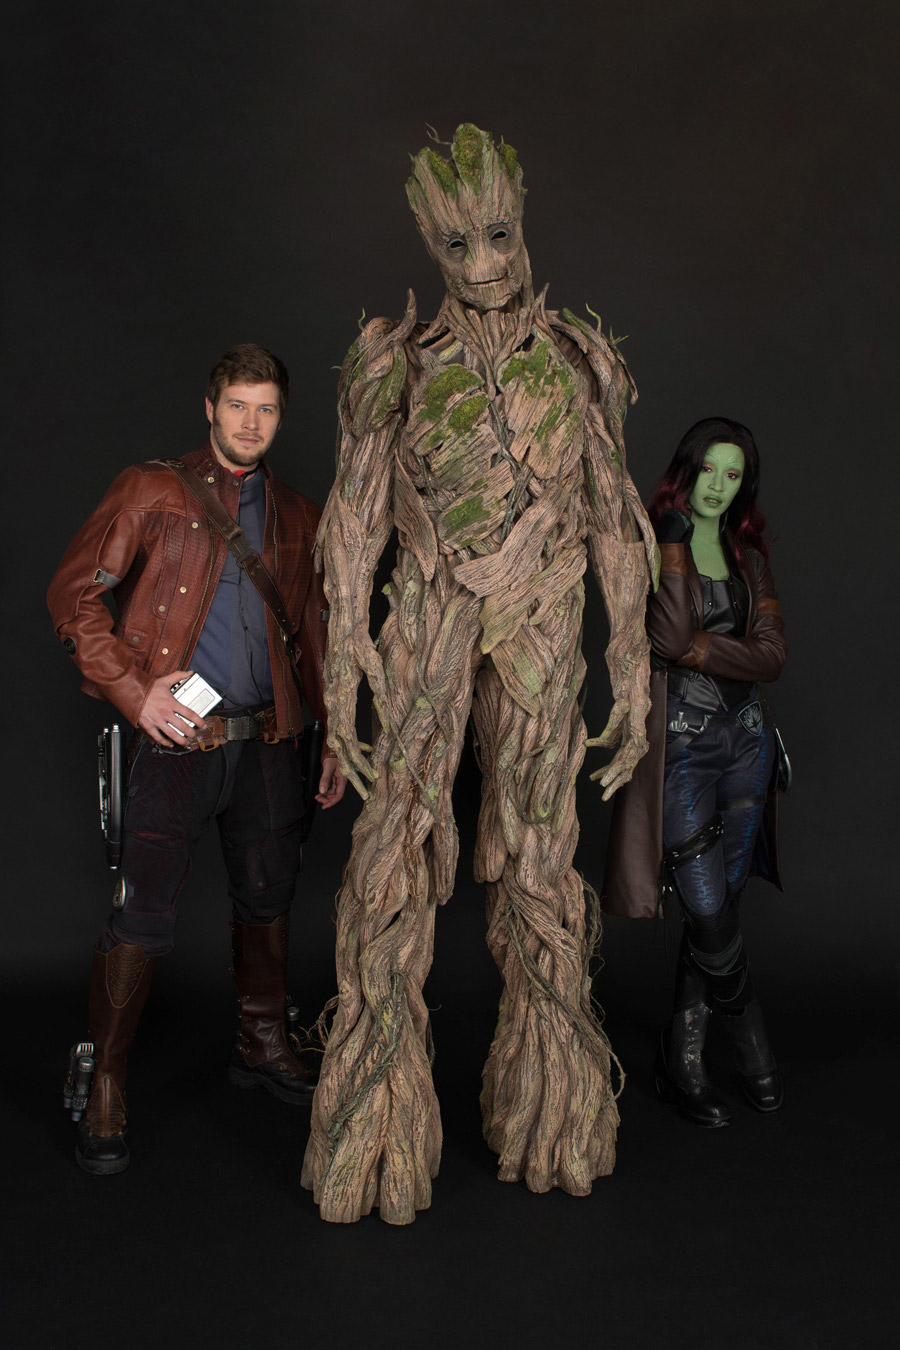 I am groot groot character meet and greet coming to disneyland below is a photo of star lord gamora and groot from disneyland im really surprised at how close to the cgi model the groot costume looks m4hsunfo